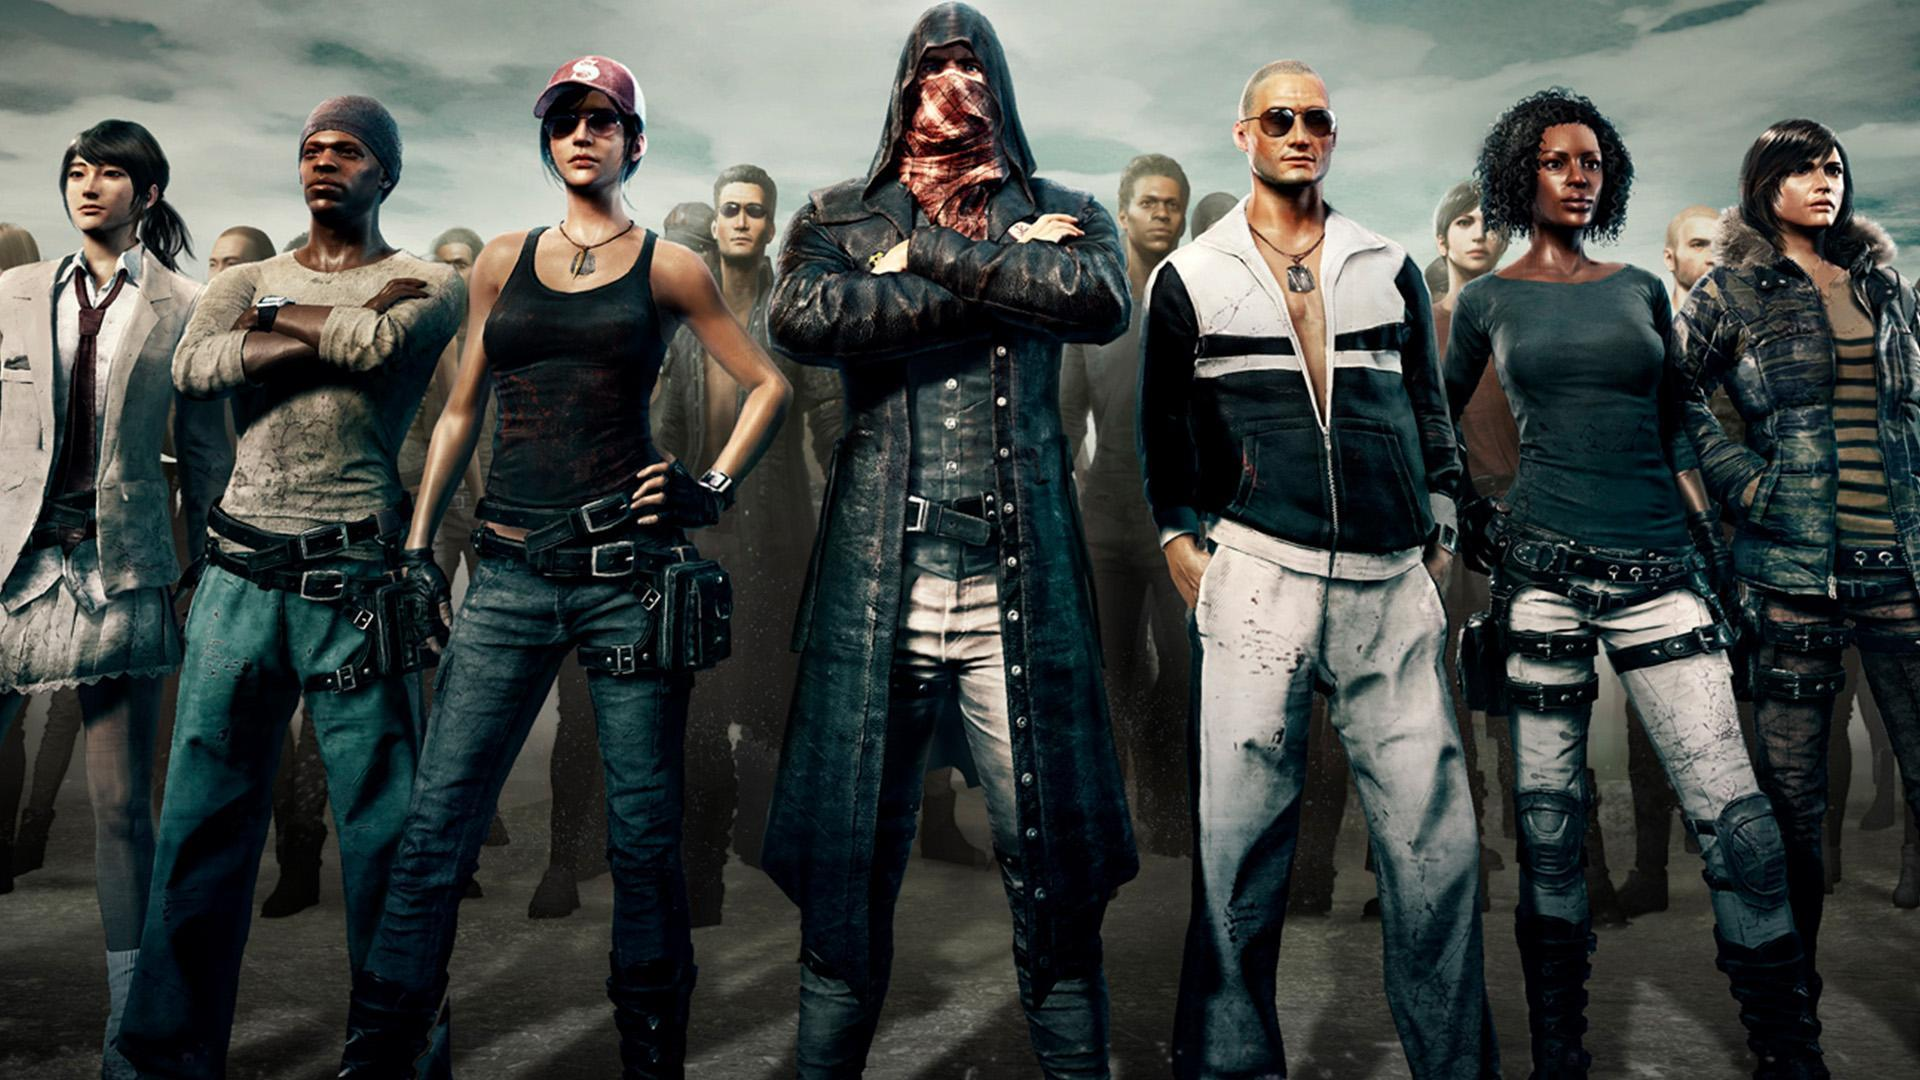 Skins for PUBG Mobile - Wallpapers for Android - APK Download